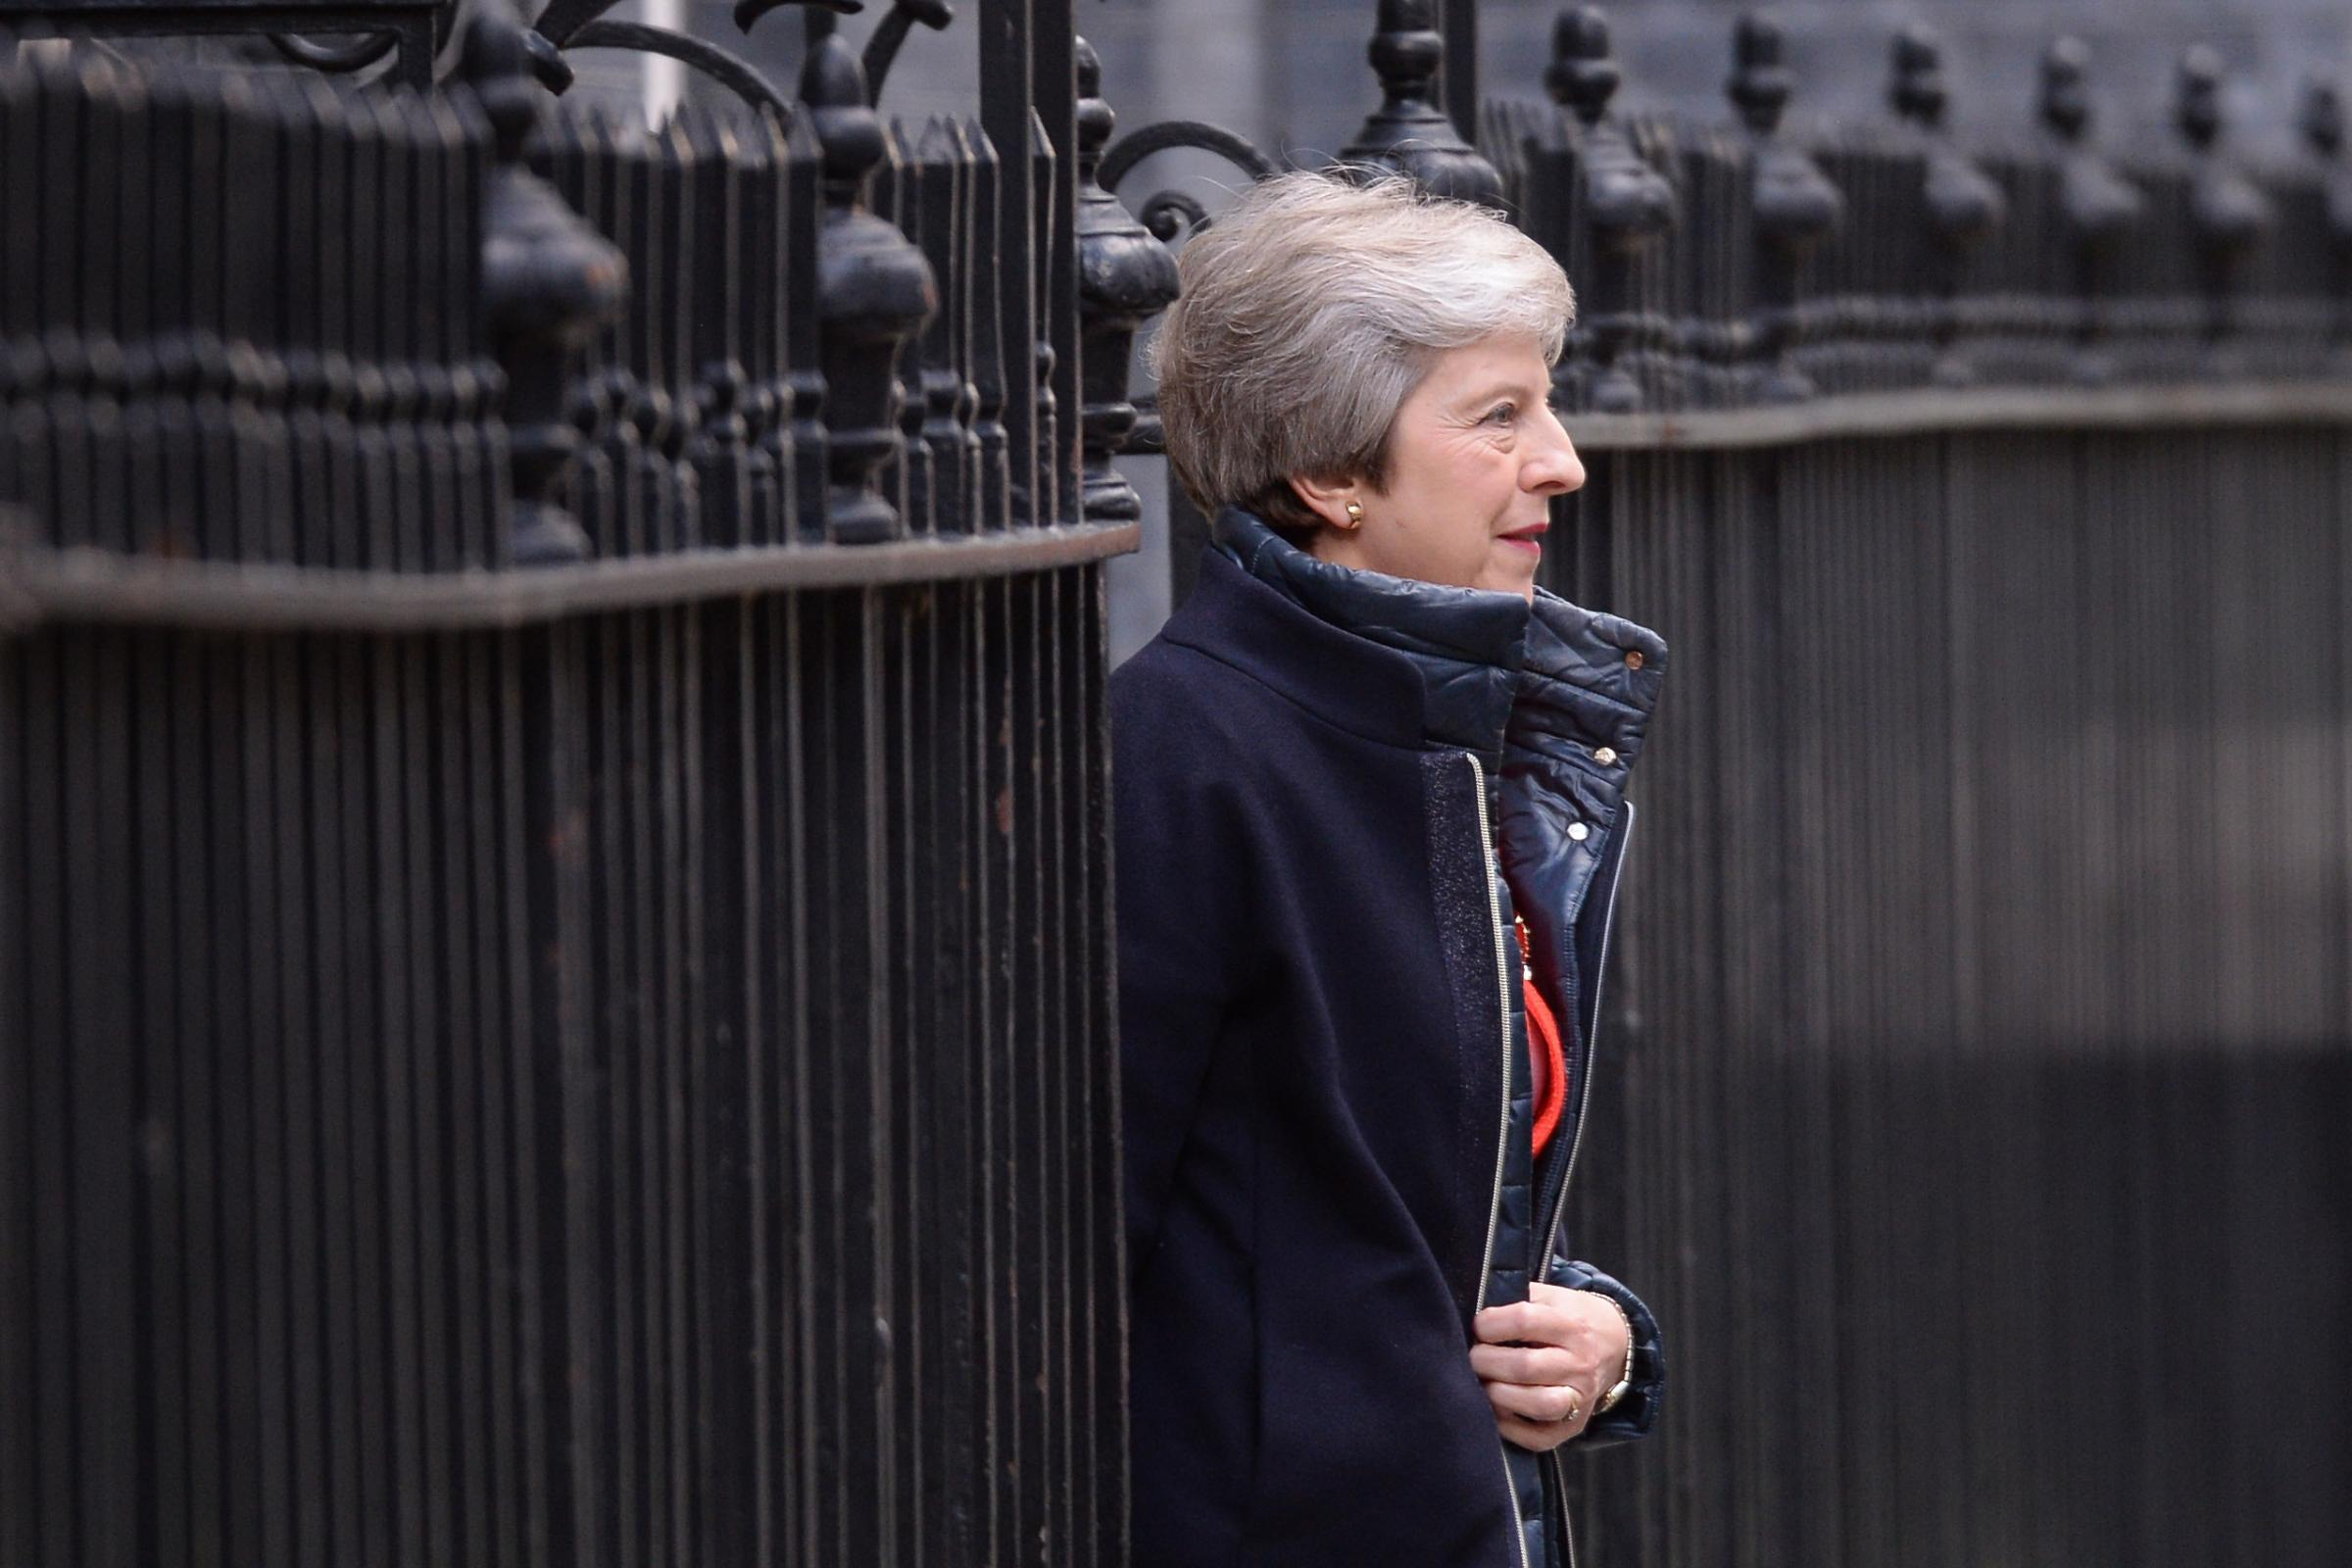 May faces Brexiteer fury as Cabinet prepares to consider deal